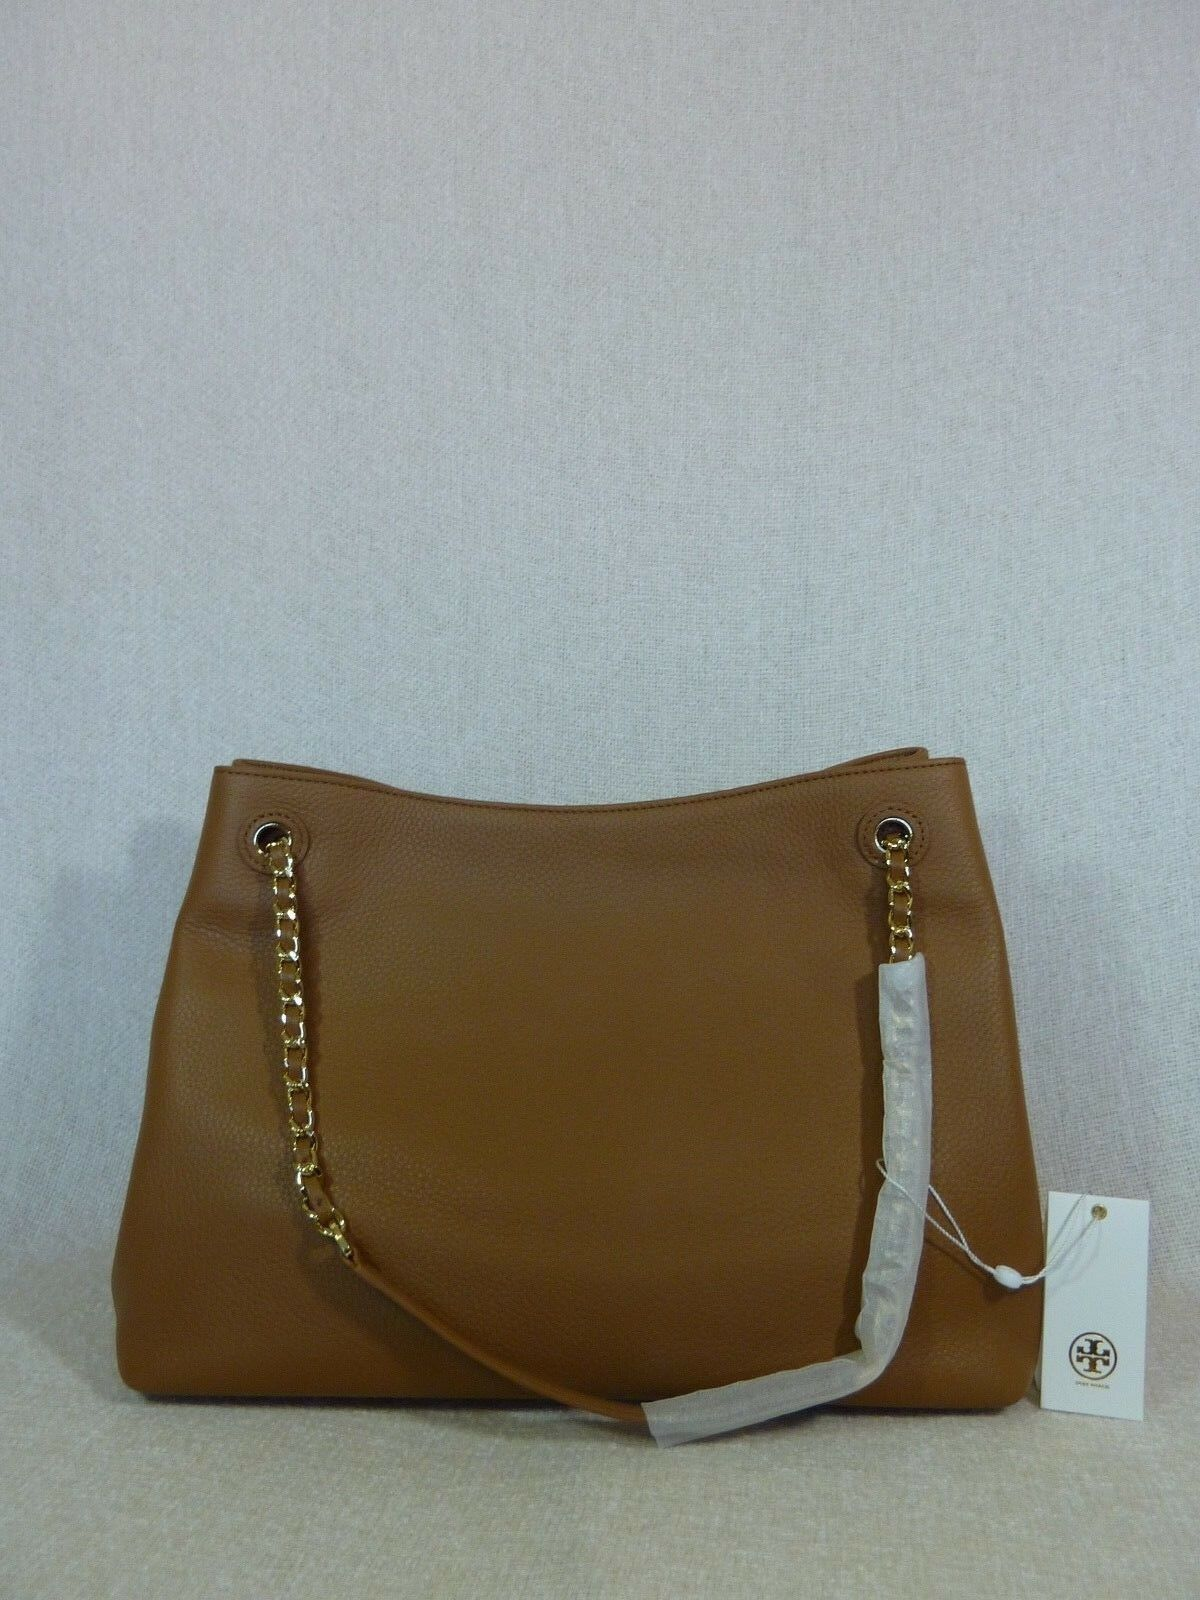 NWT Tory Burch Bark Brown Pebbled Leather Thea Chain Slouchy Tote $495 image 7